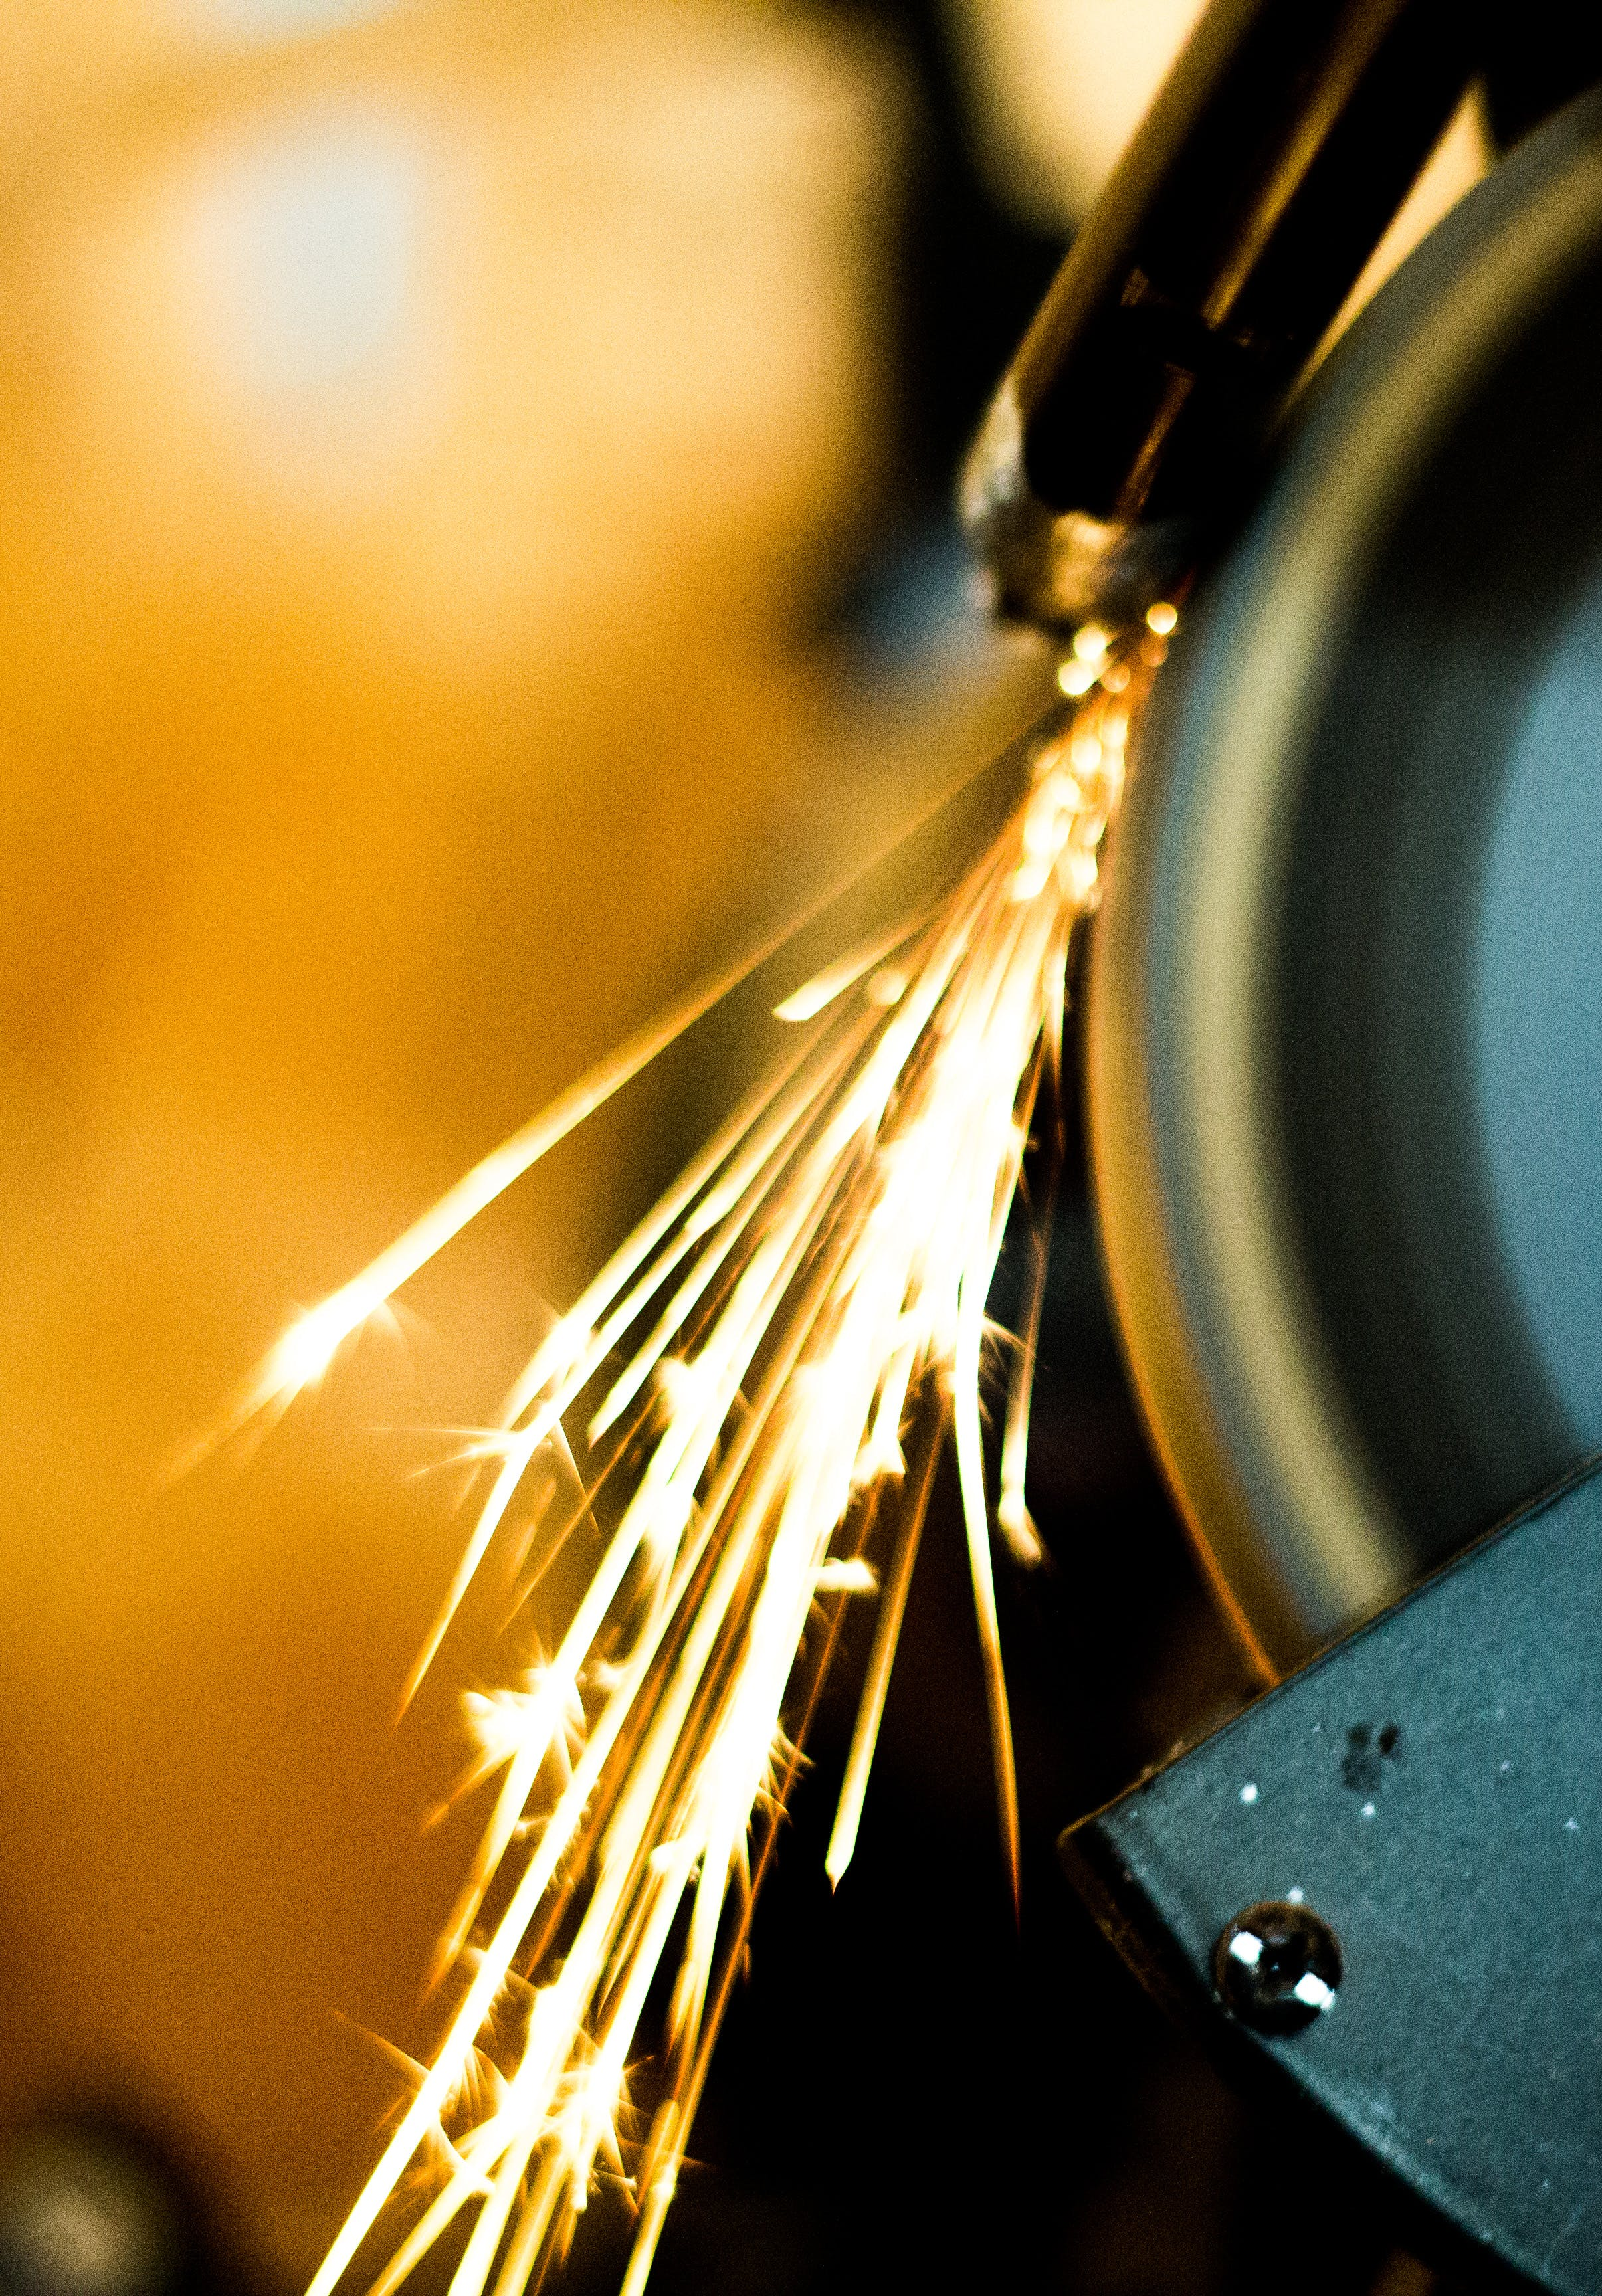 Steel Wool Photography of Bench Grinder